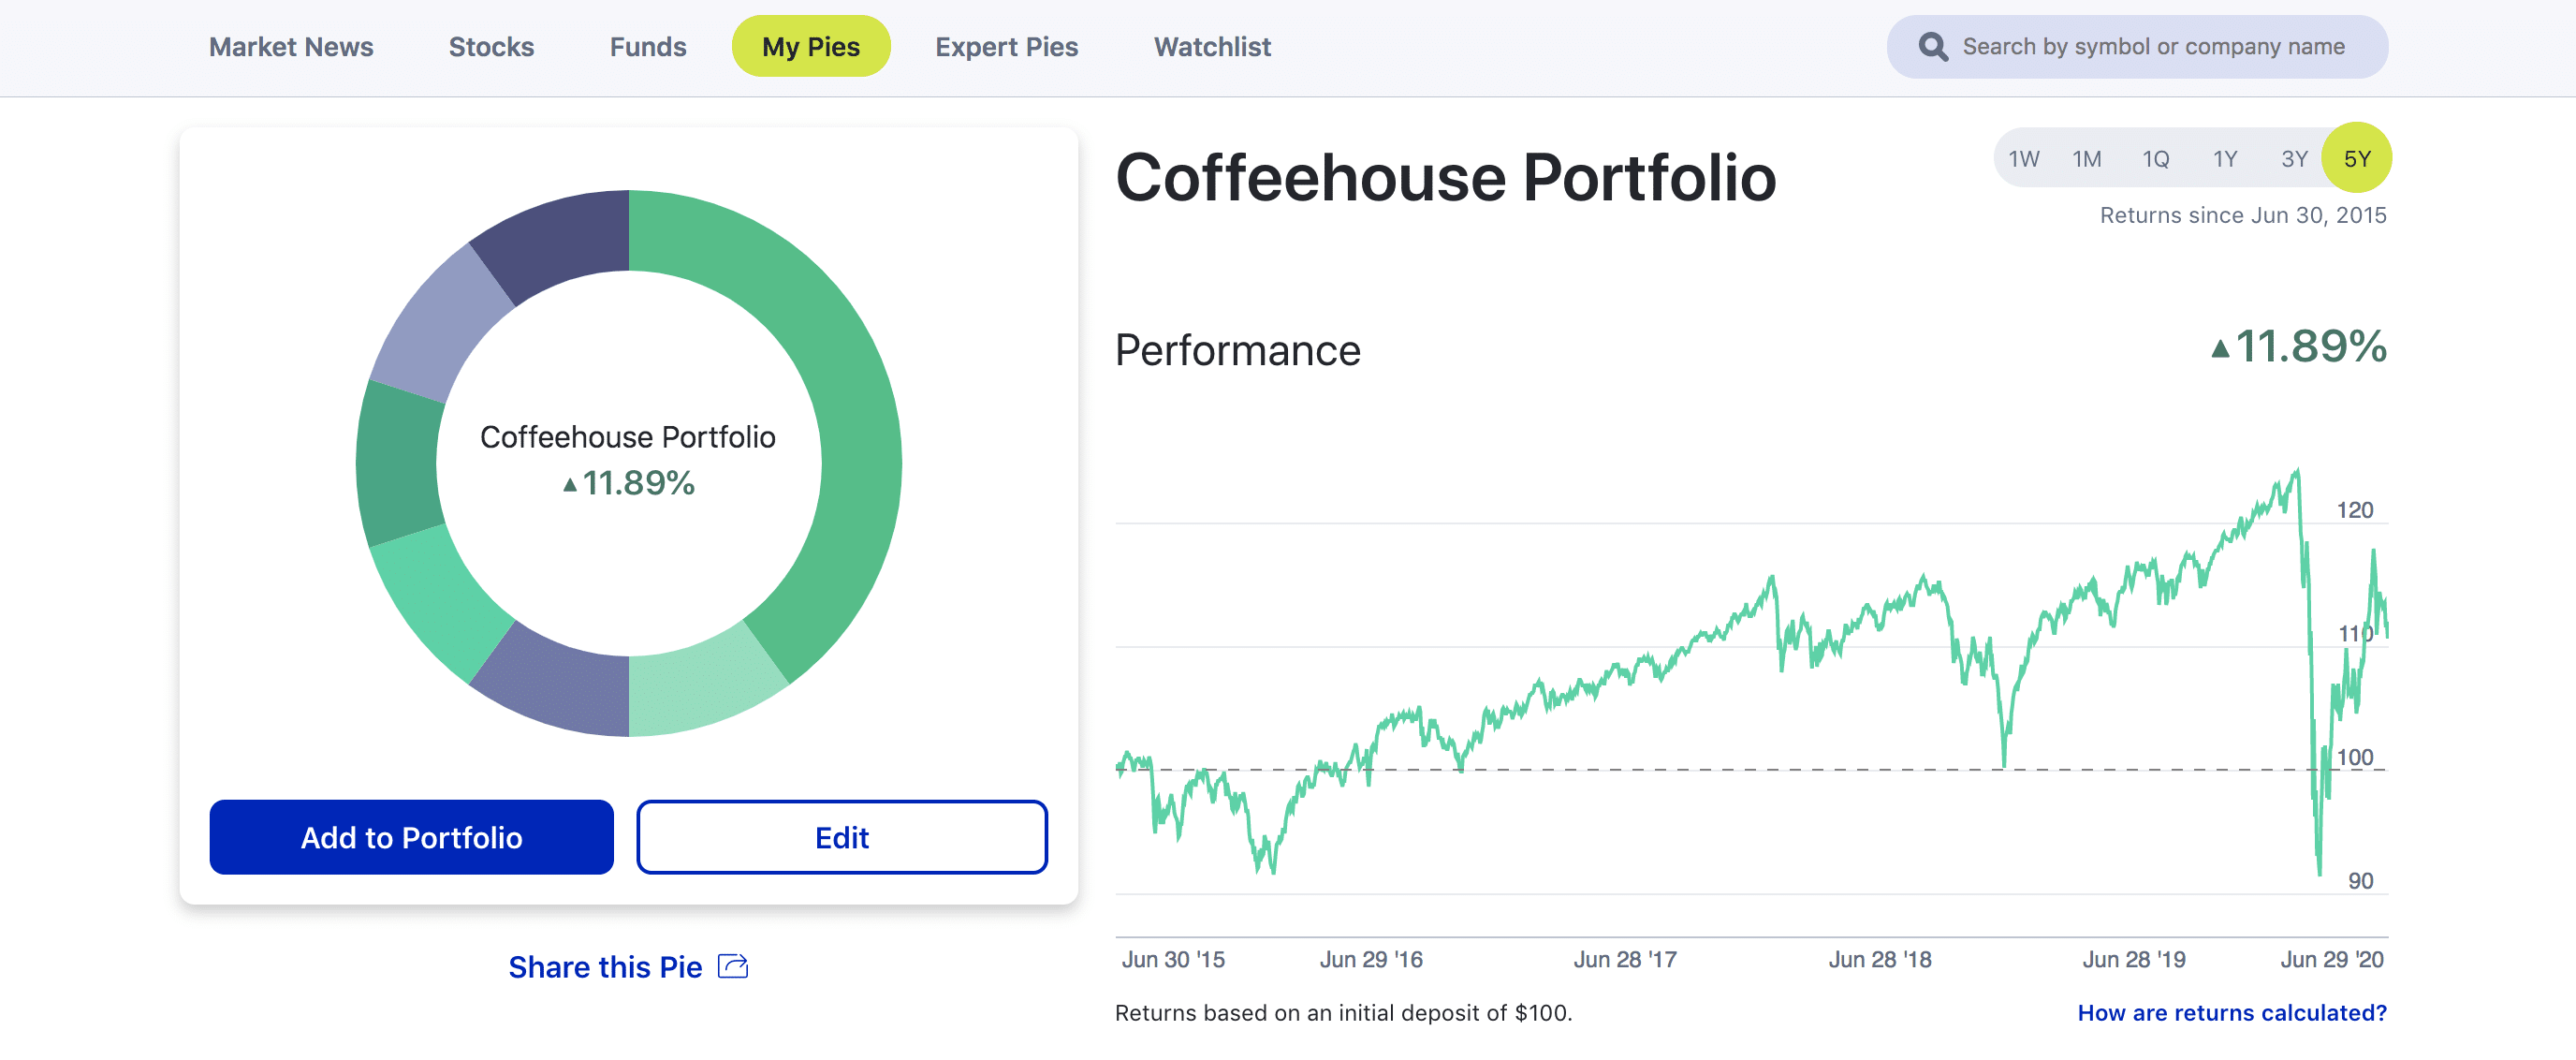 coffeehouse-portfolio using M1